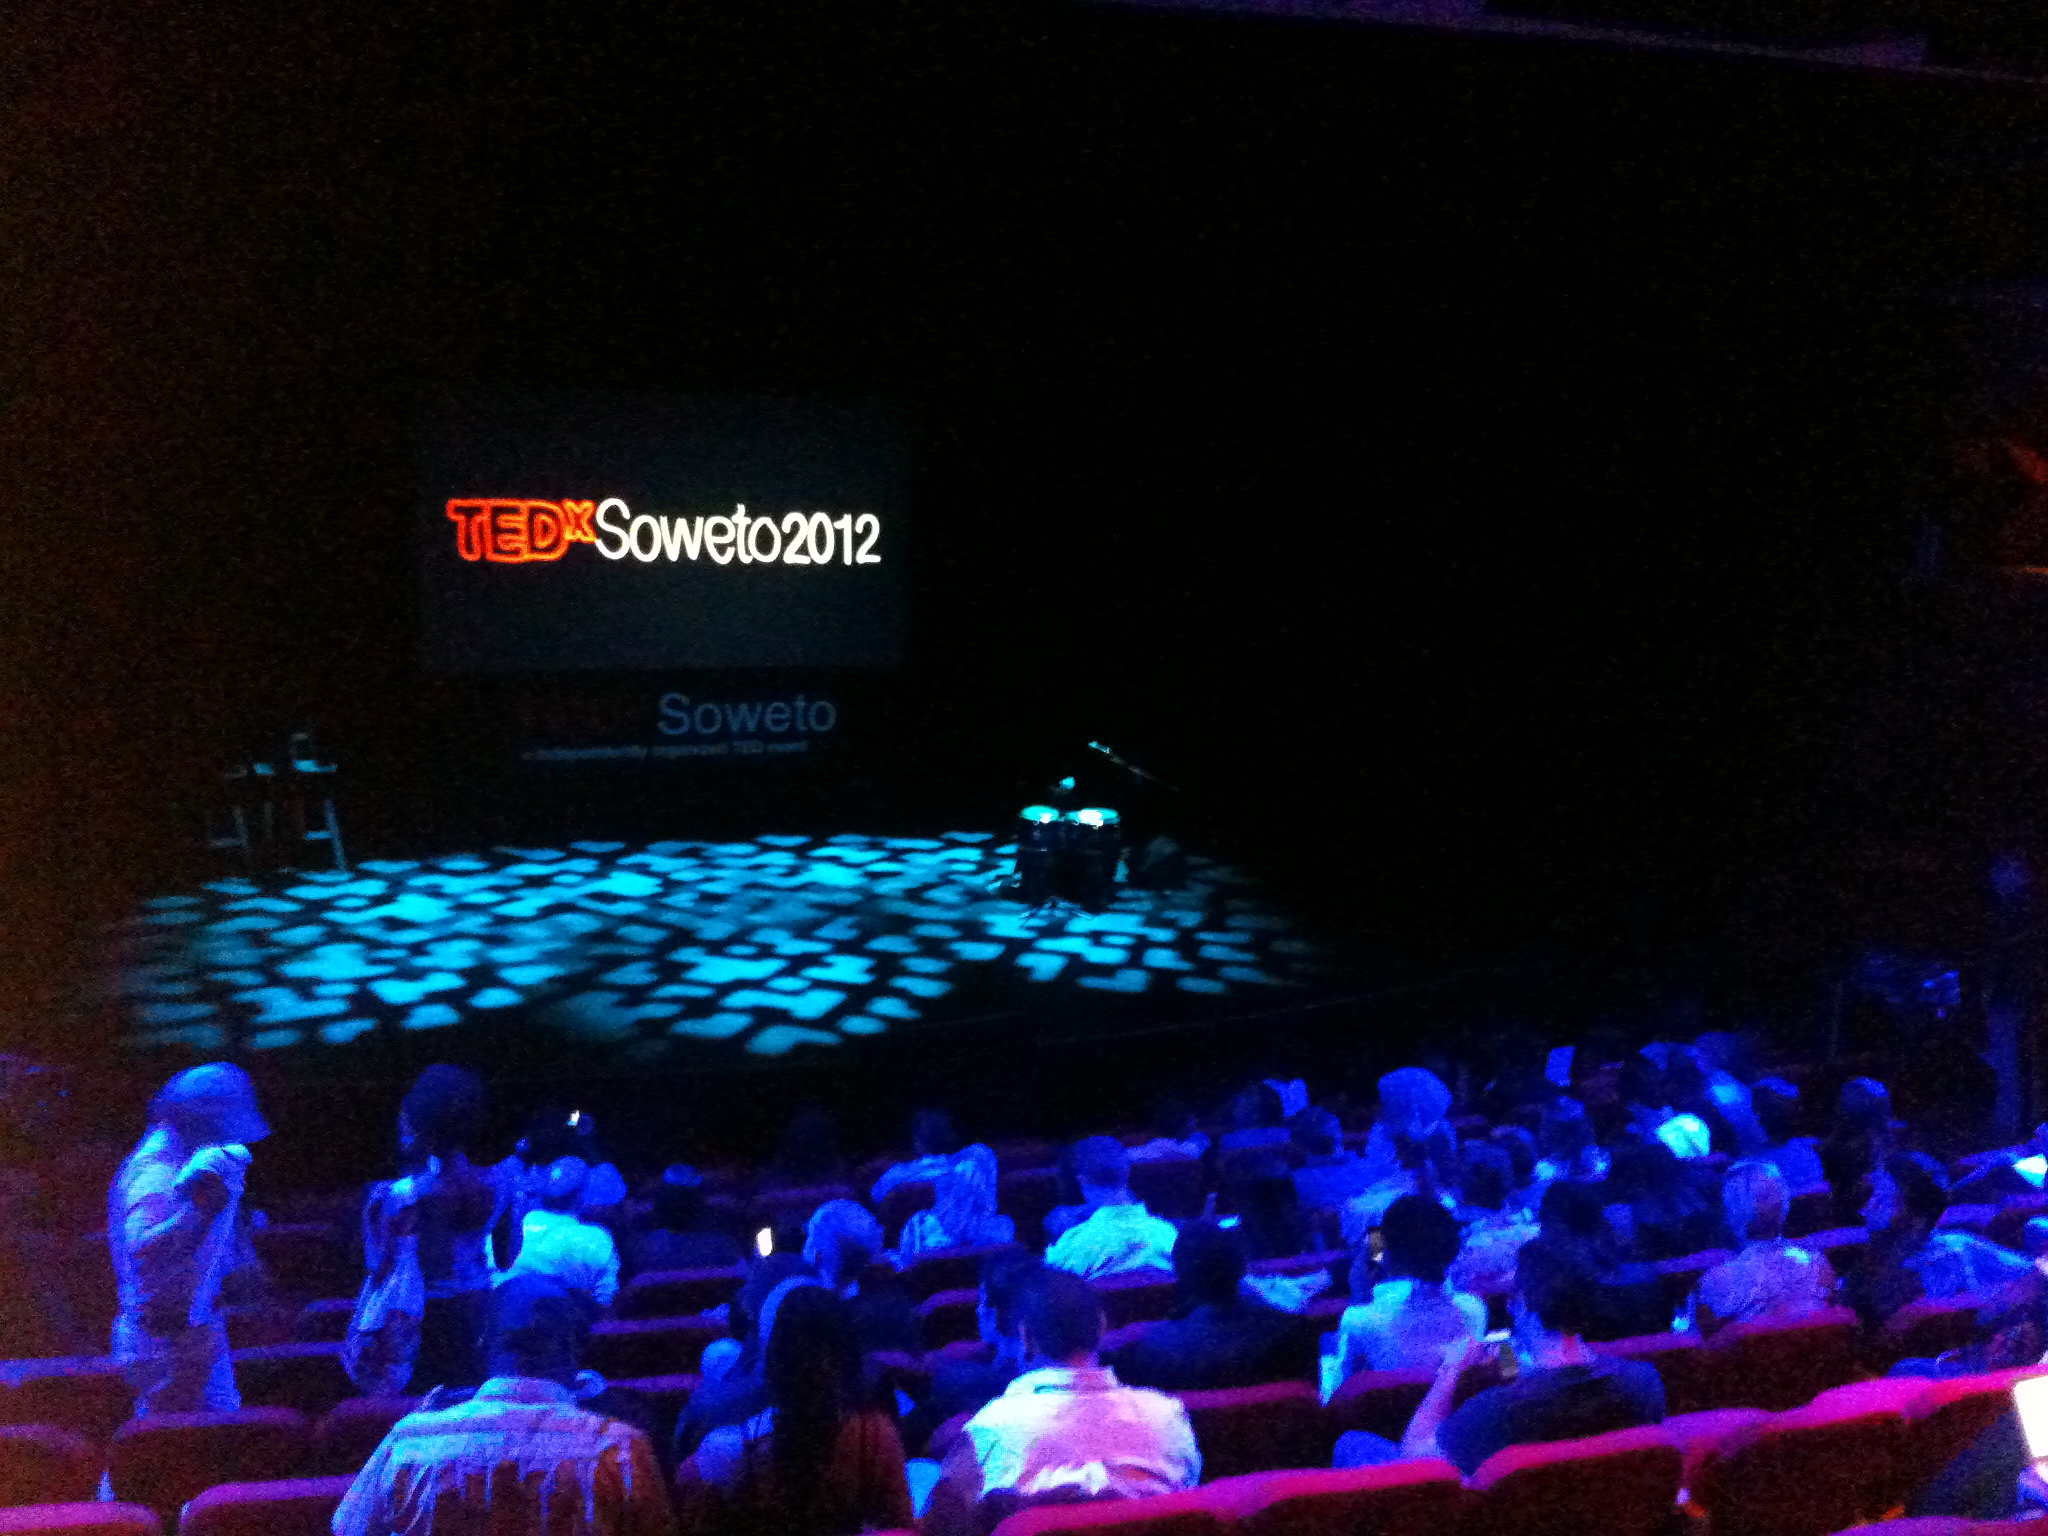 """<img src=http://""""TEDxSoweto_2012_Leapfrog_Audience.png""""?w=504&h=378 alt=""""TEDxSoweto 2012 Leapfrog Audience"""">"""